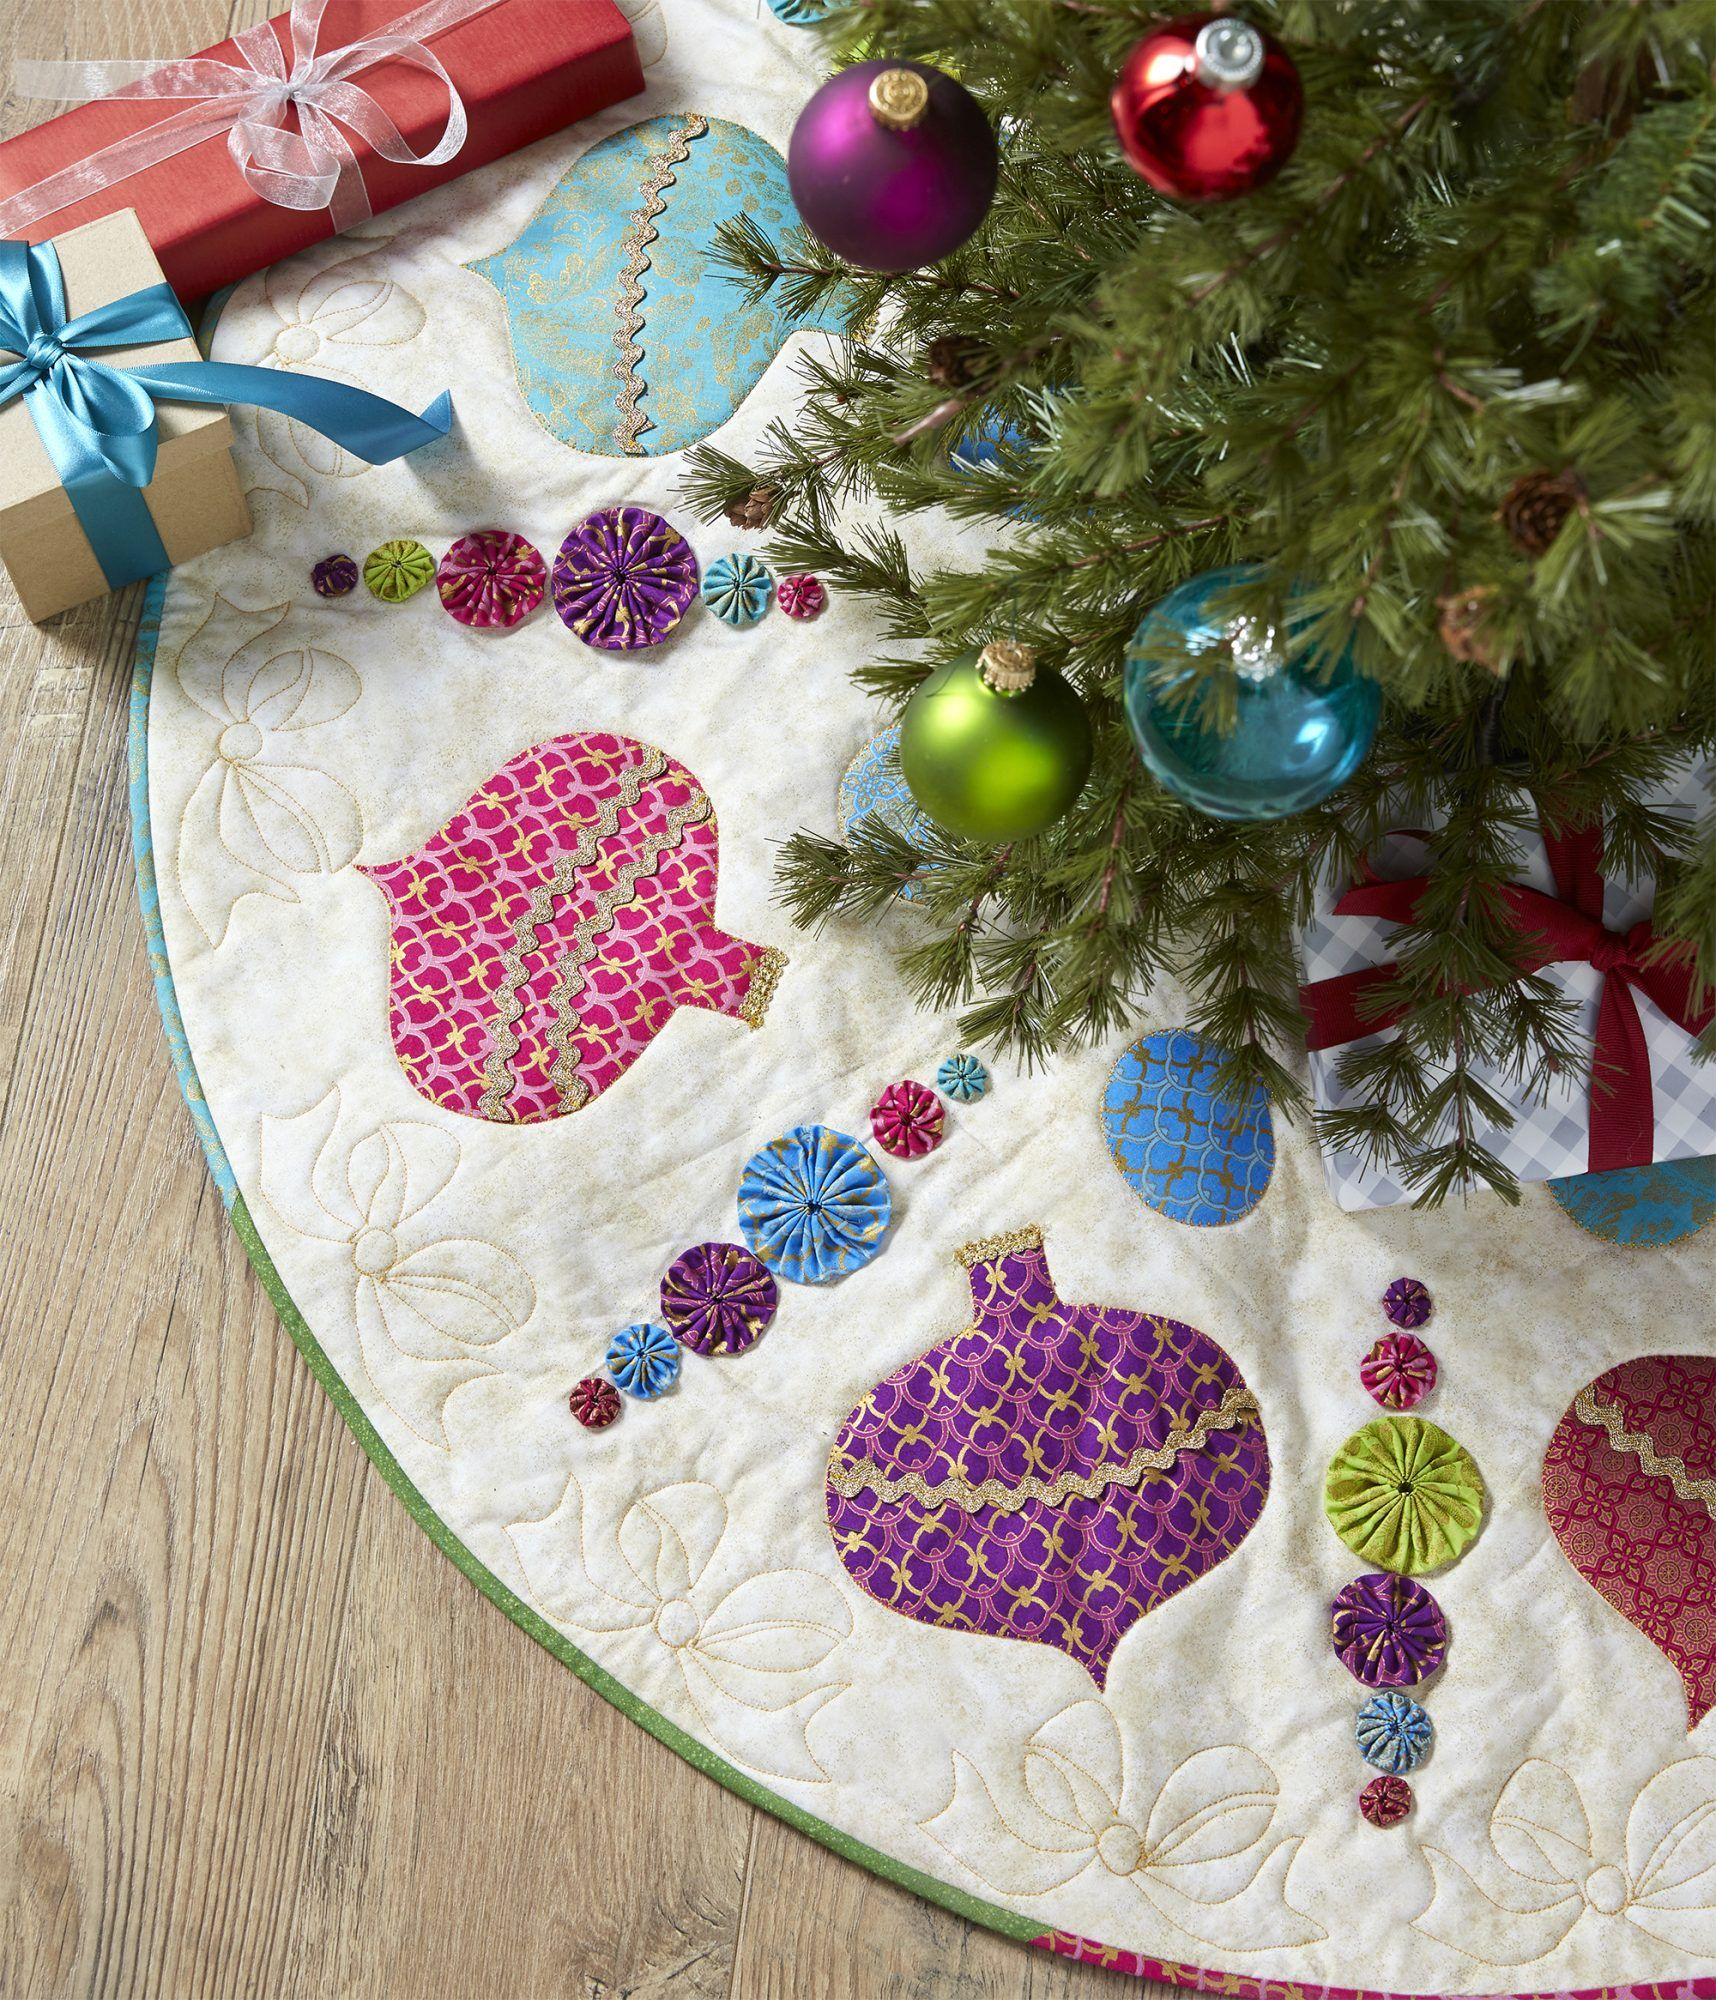 Shiny Baubles in 2020 | Christmas tree skirts patterns, Tree skirt